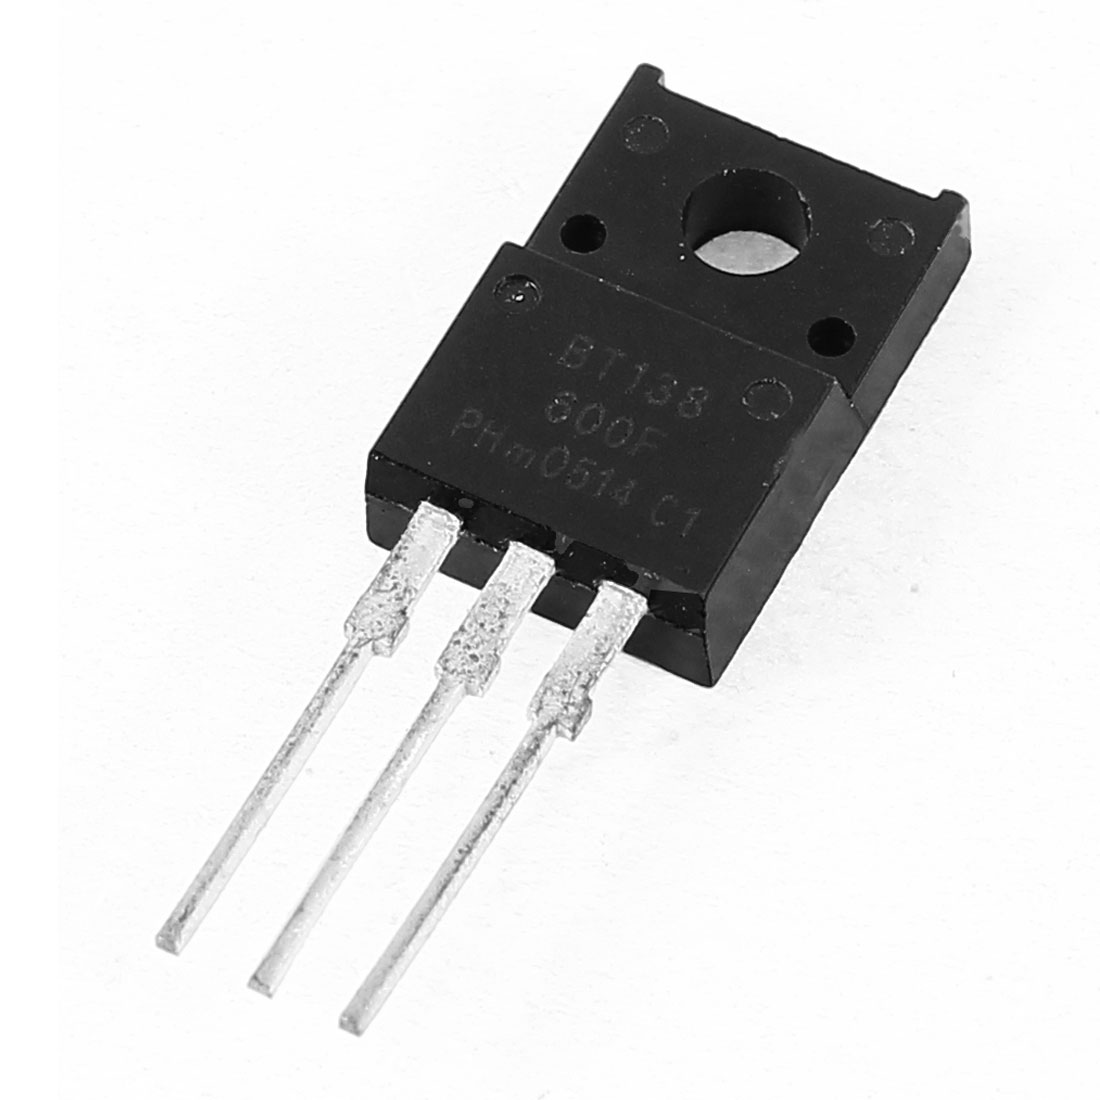 BT138-600F Fast Switching Speed Semiconductor NPN Power Transistor 600V